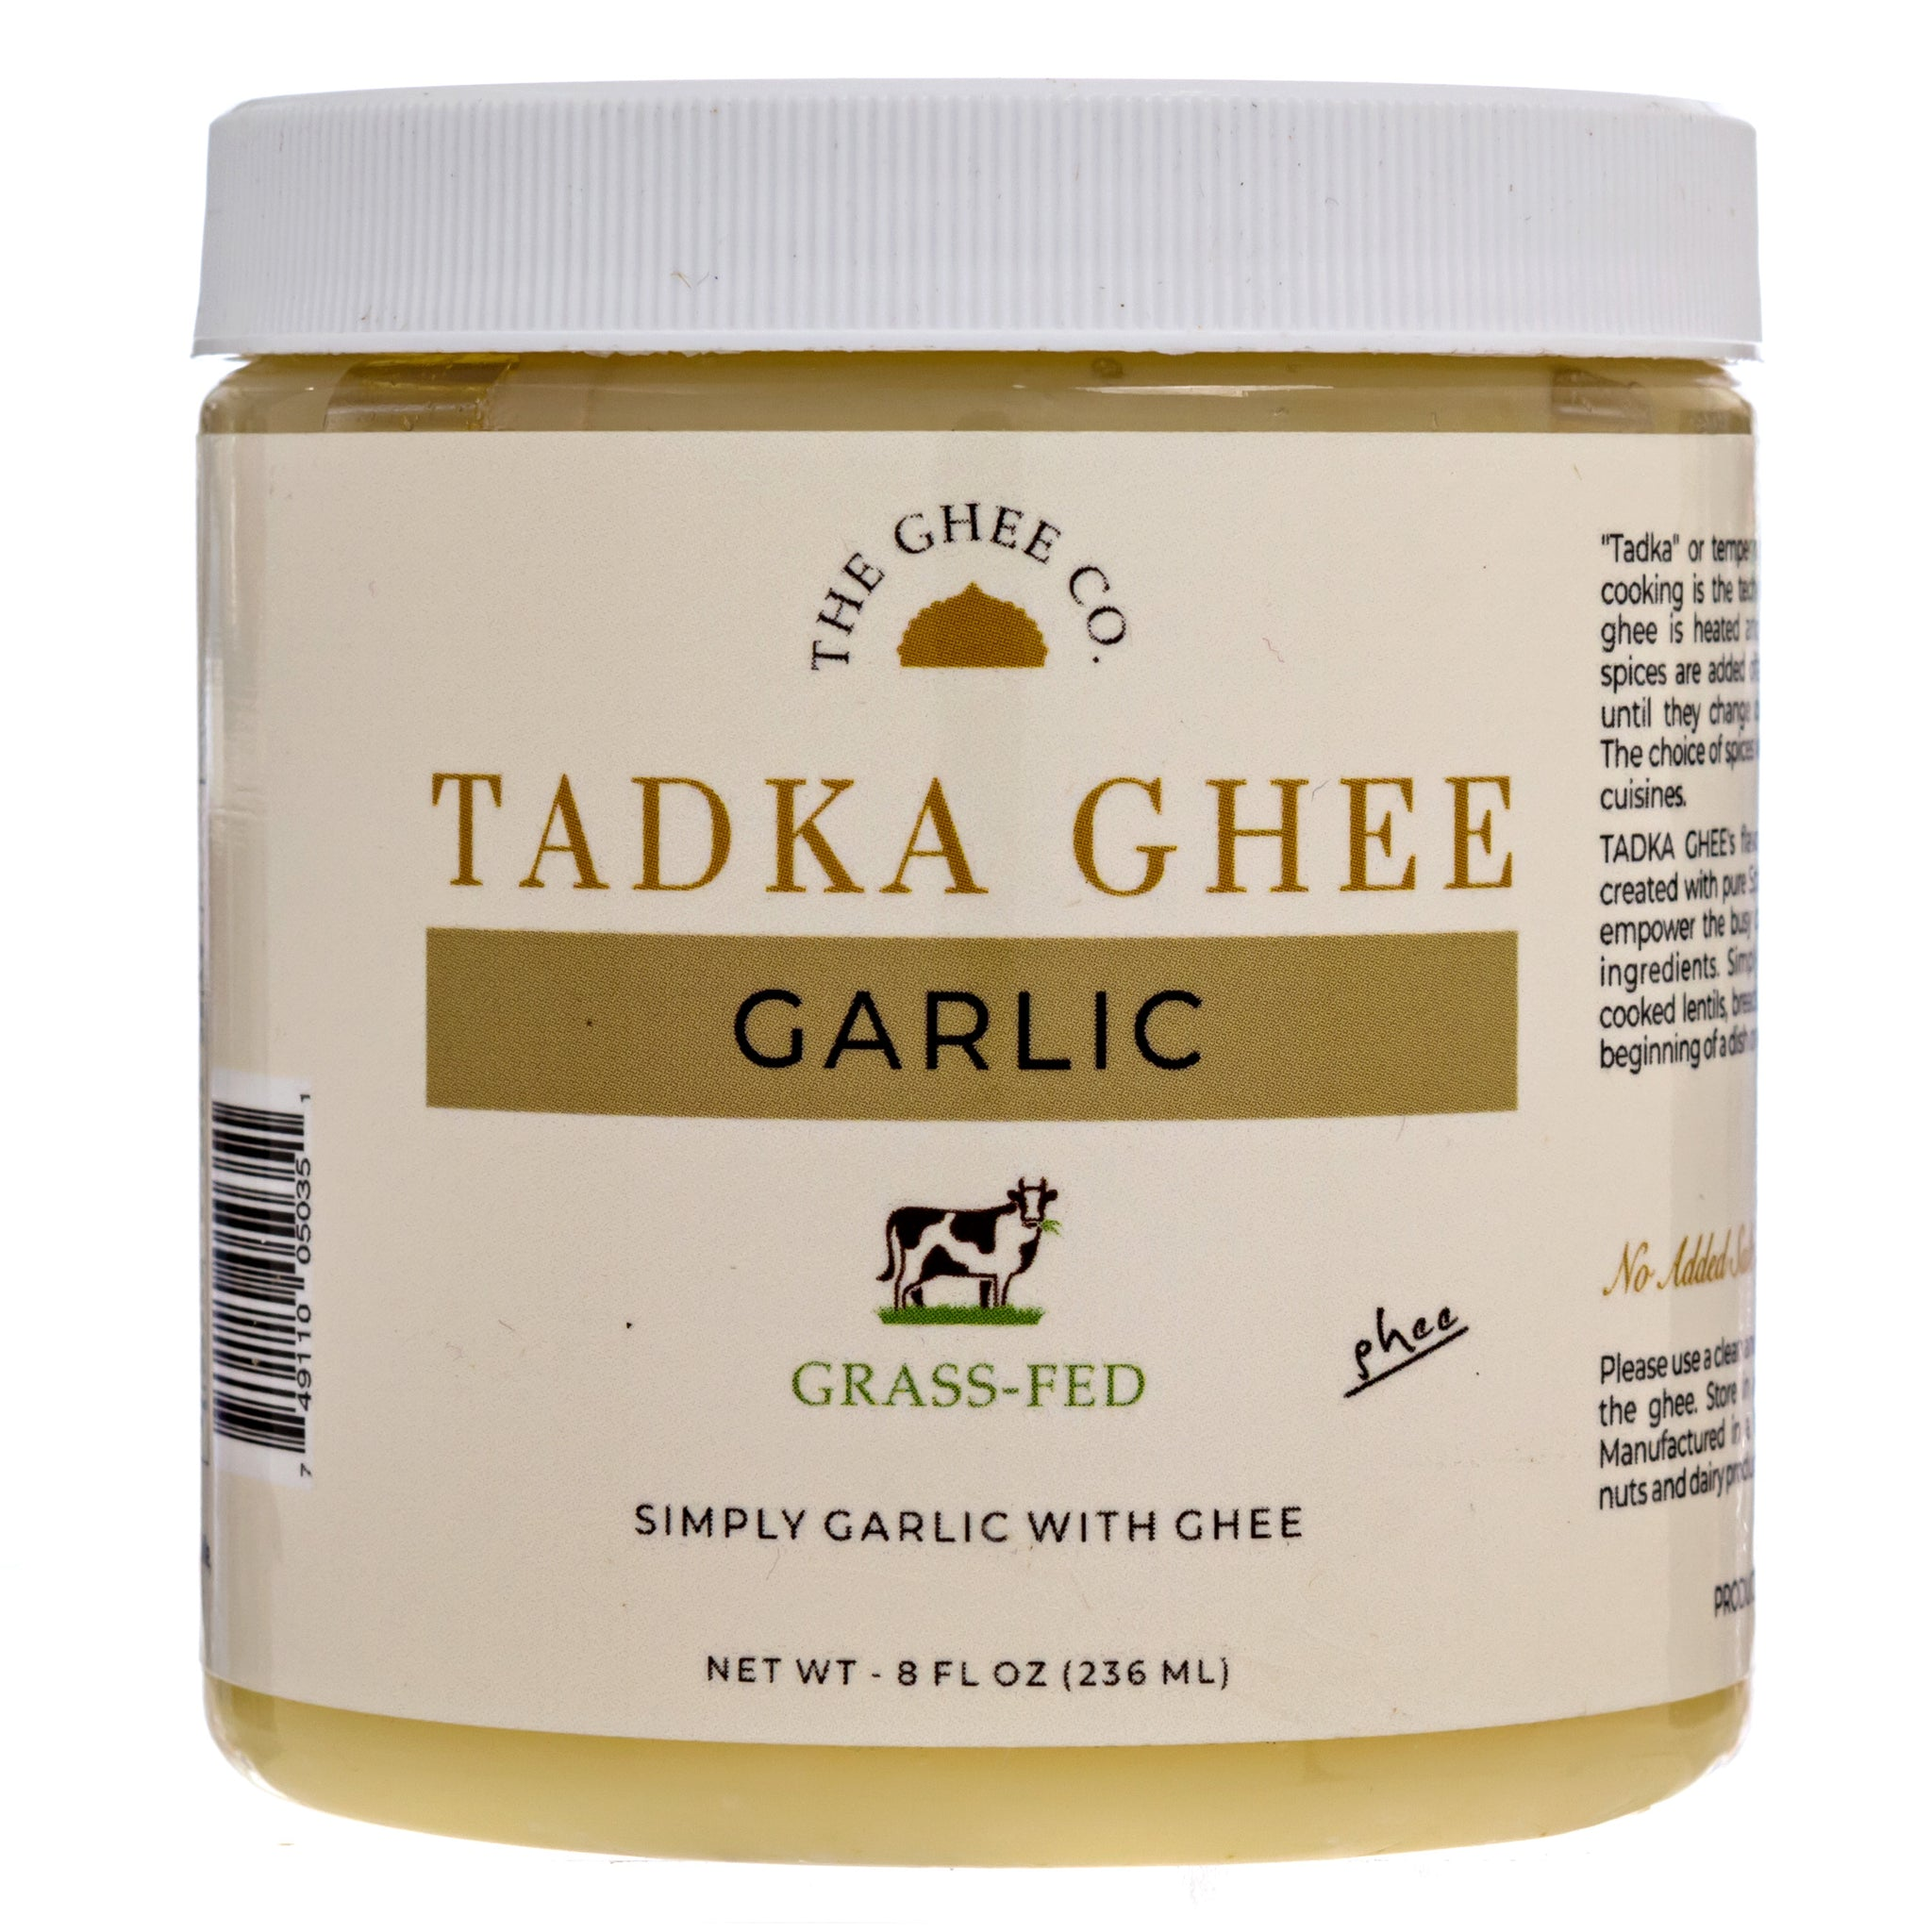 Tadka Ghee - Garlic